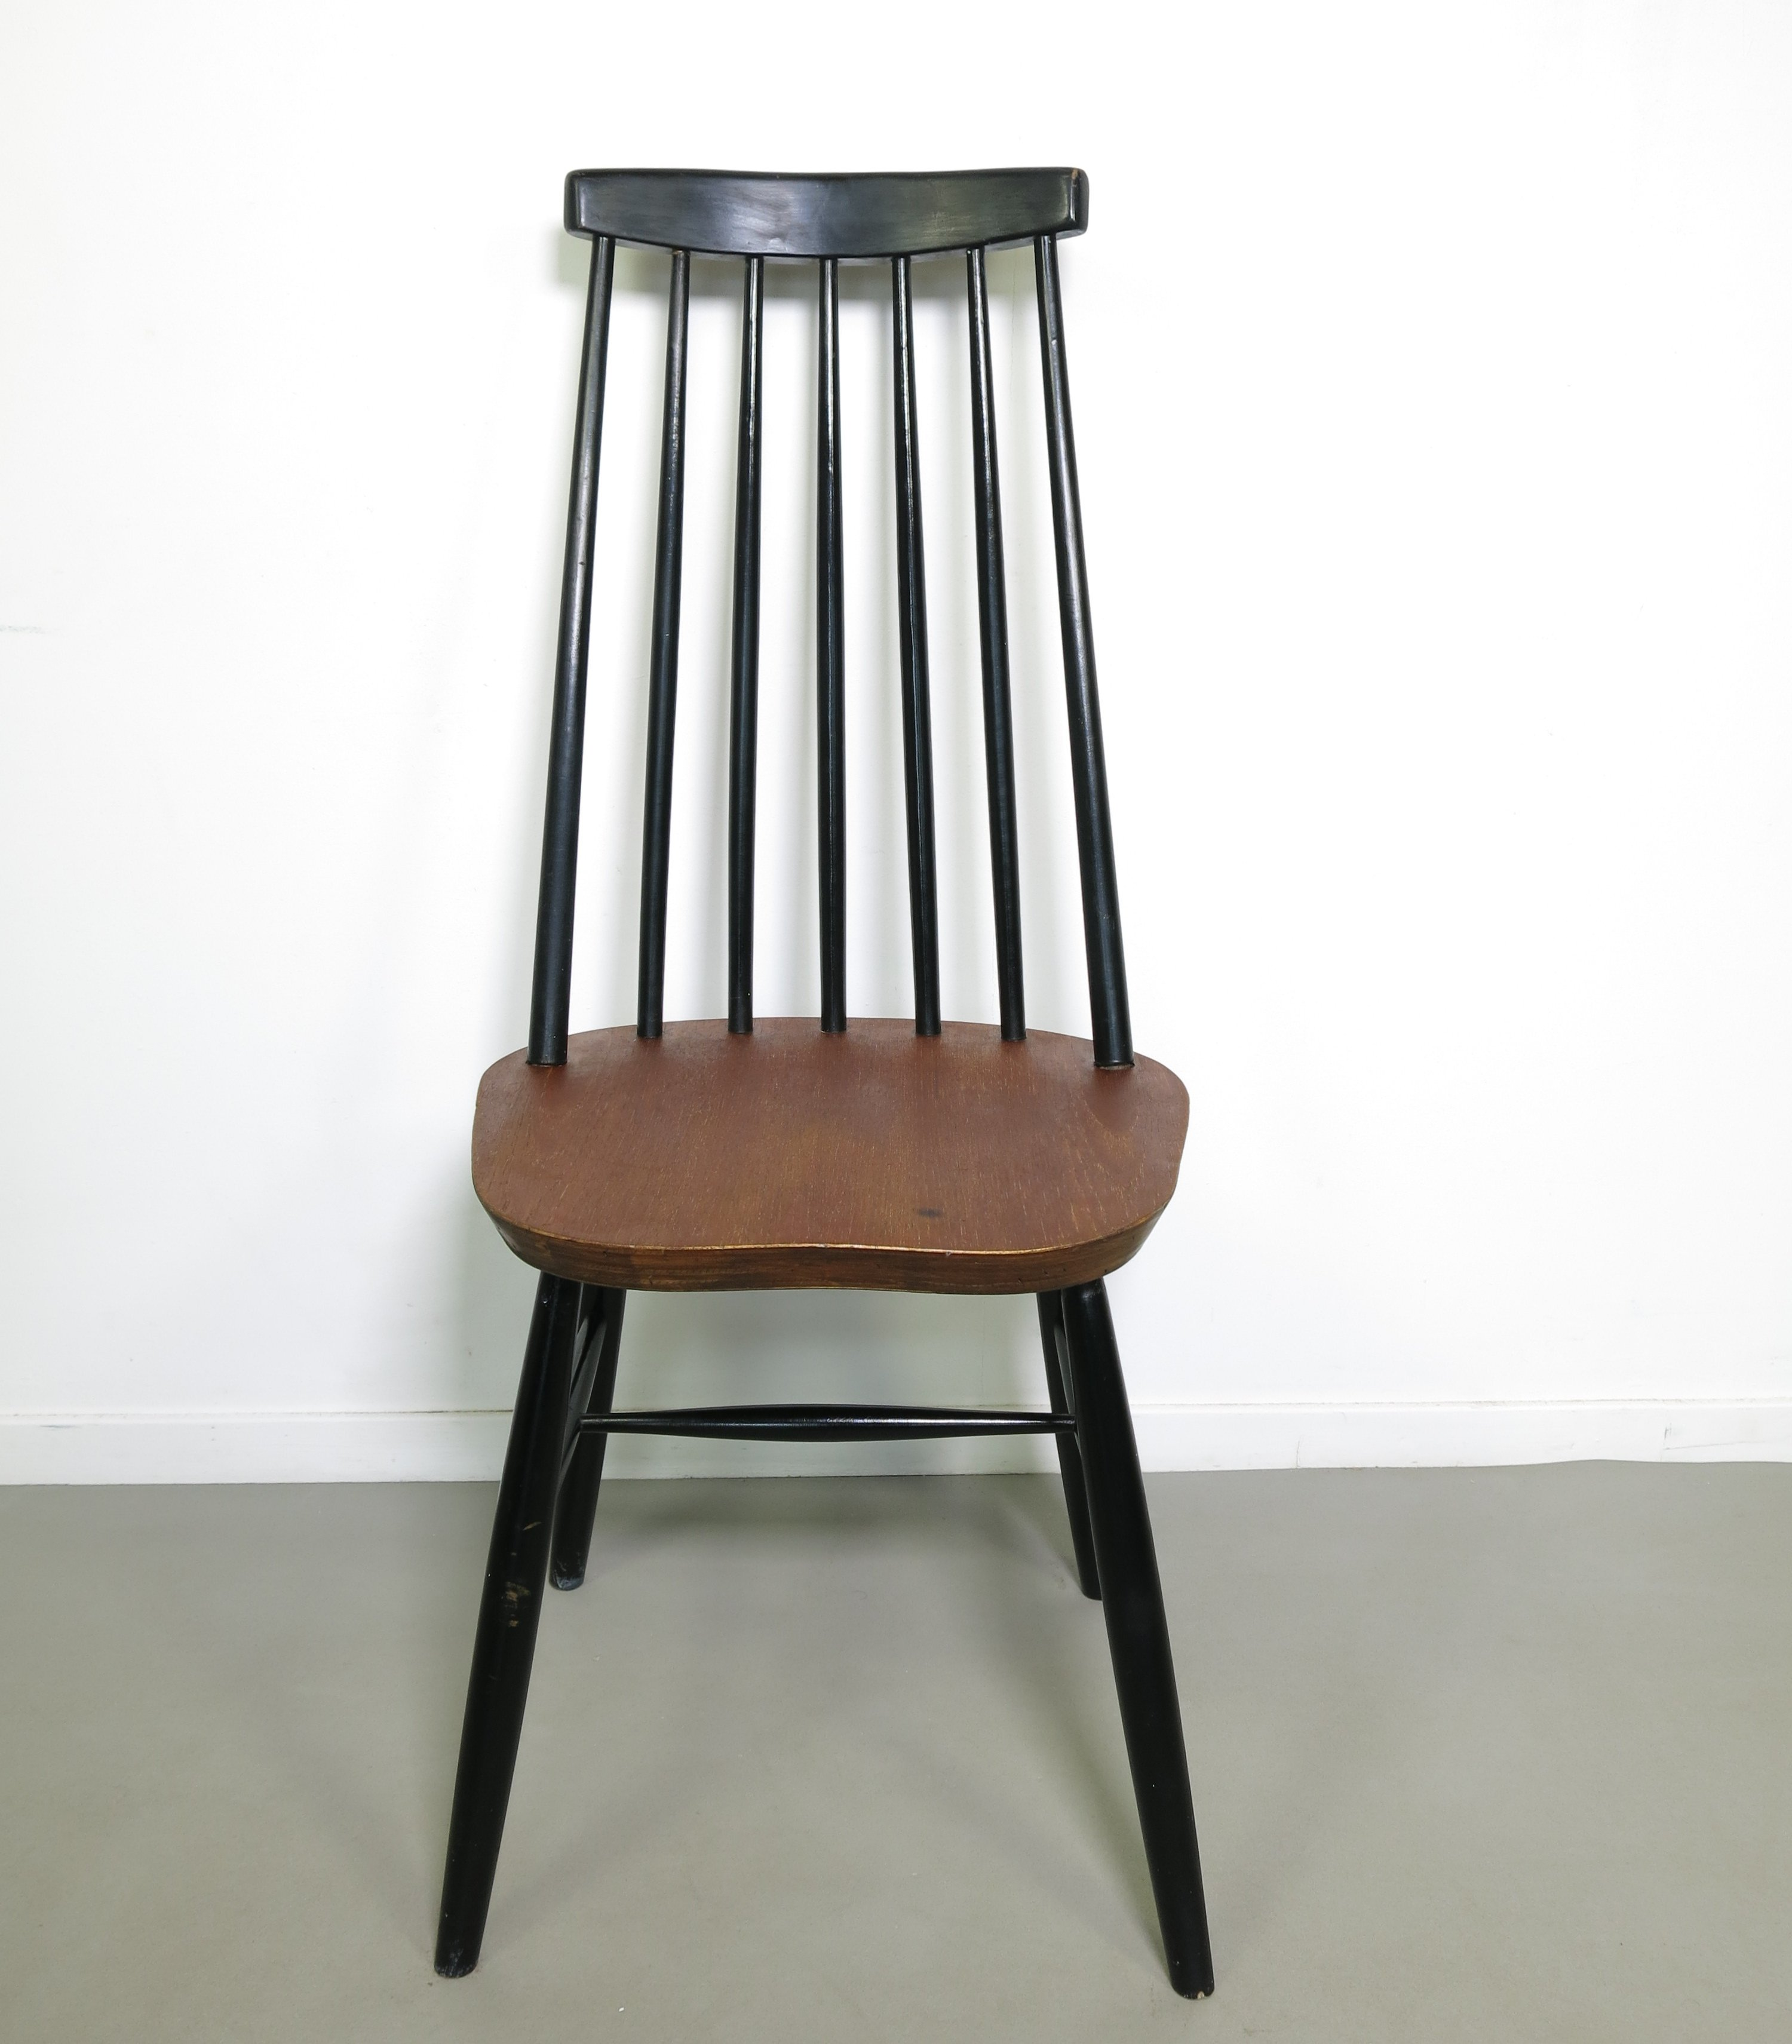 ilmari tapiovaara dinner chair 1960s 62399. Black Bedroom Furniture Sets. Home Design Ideas